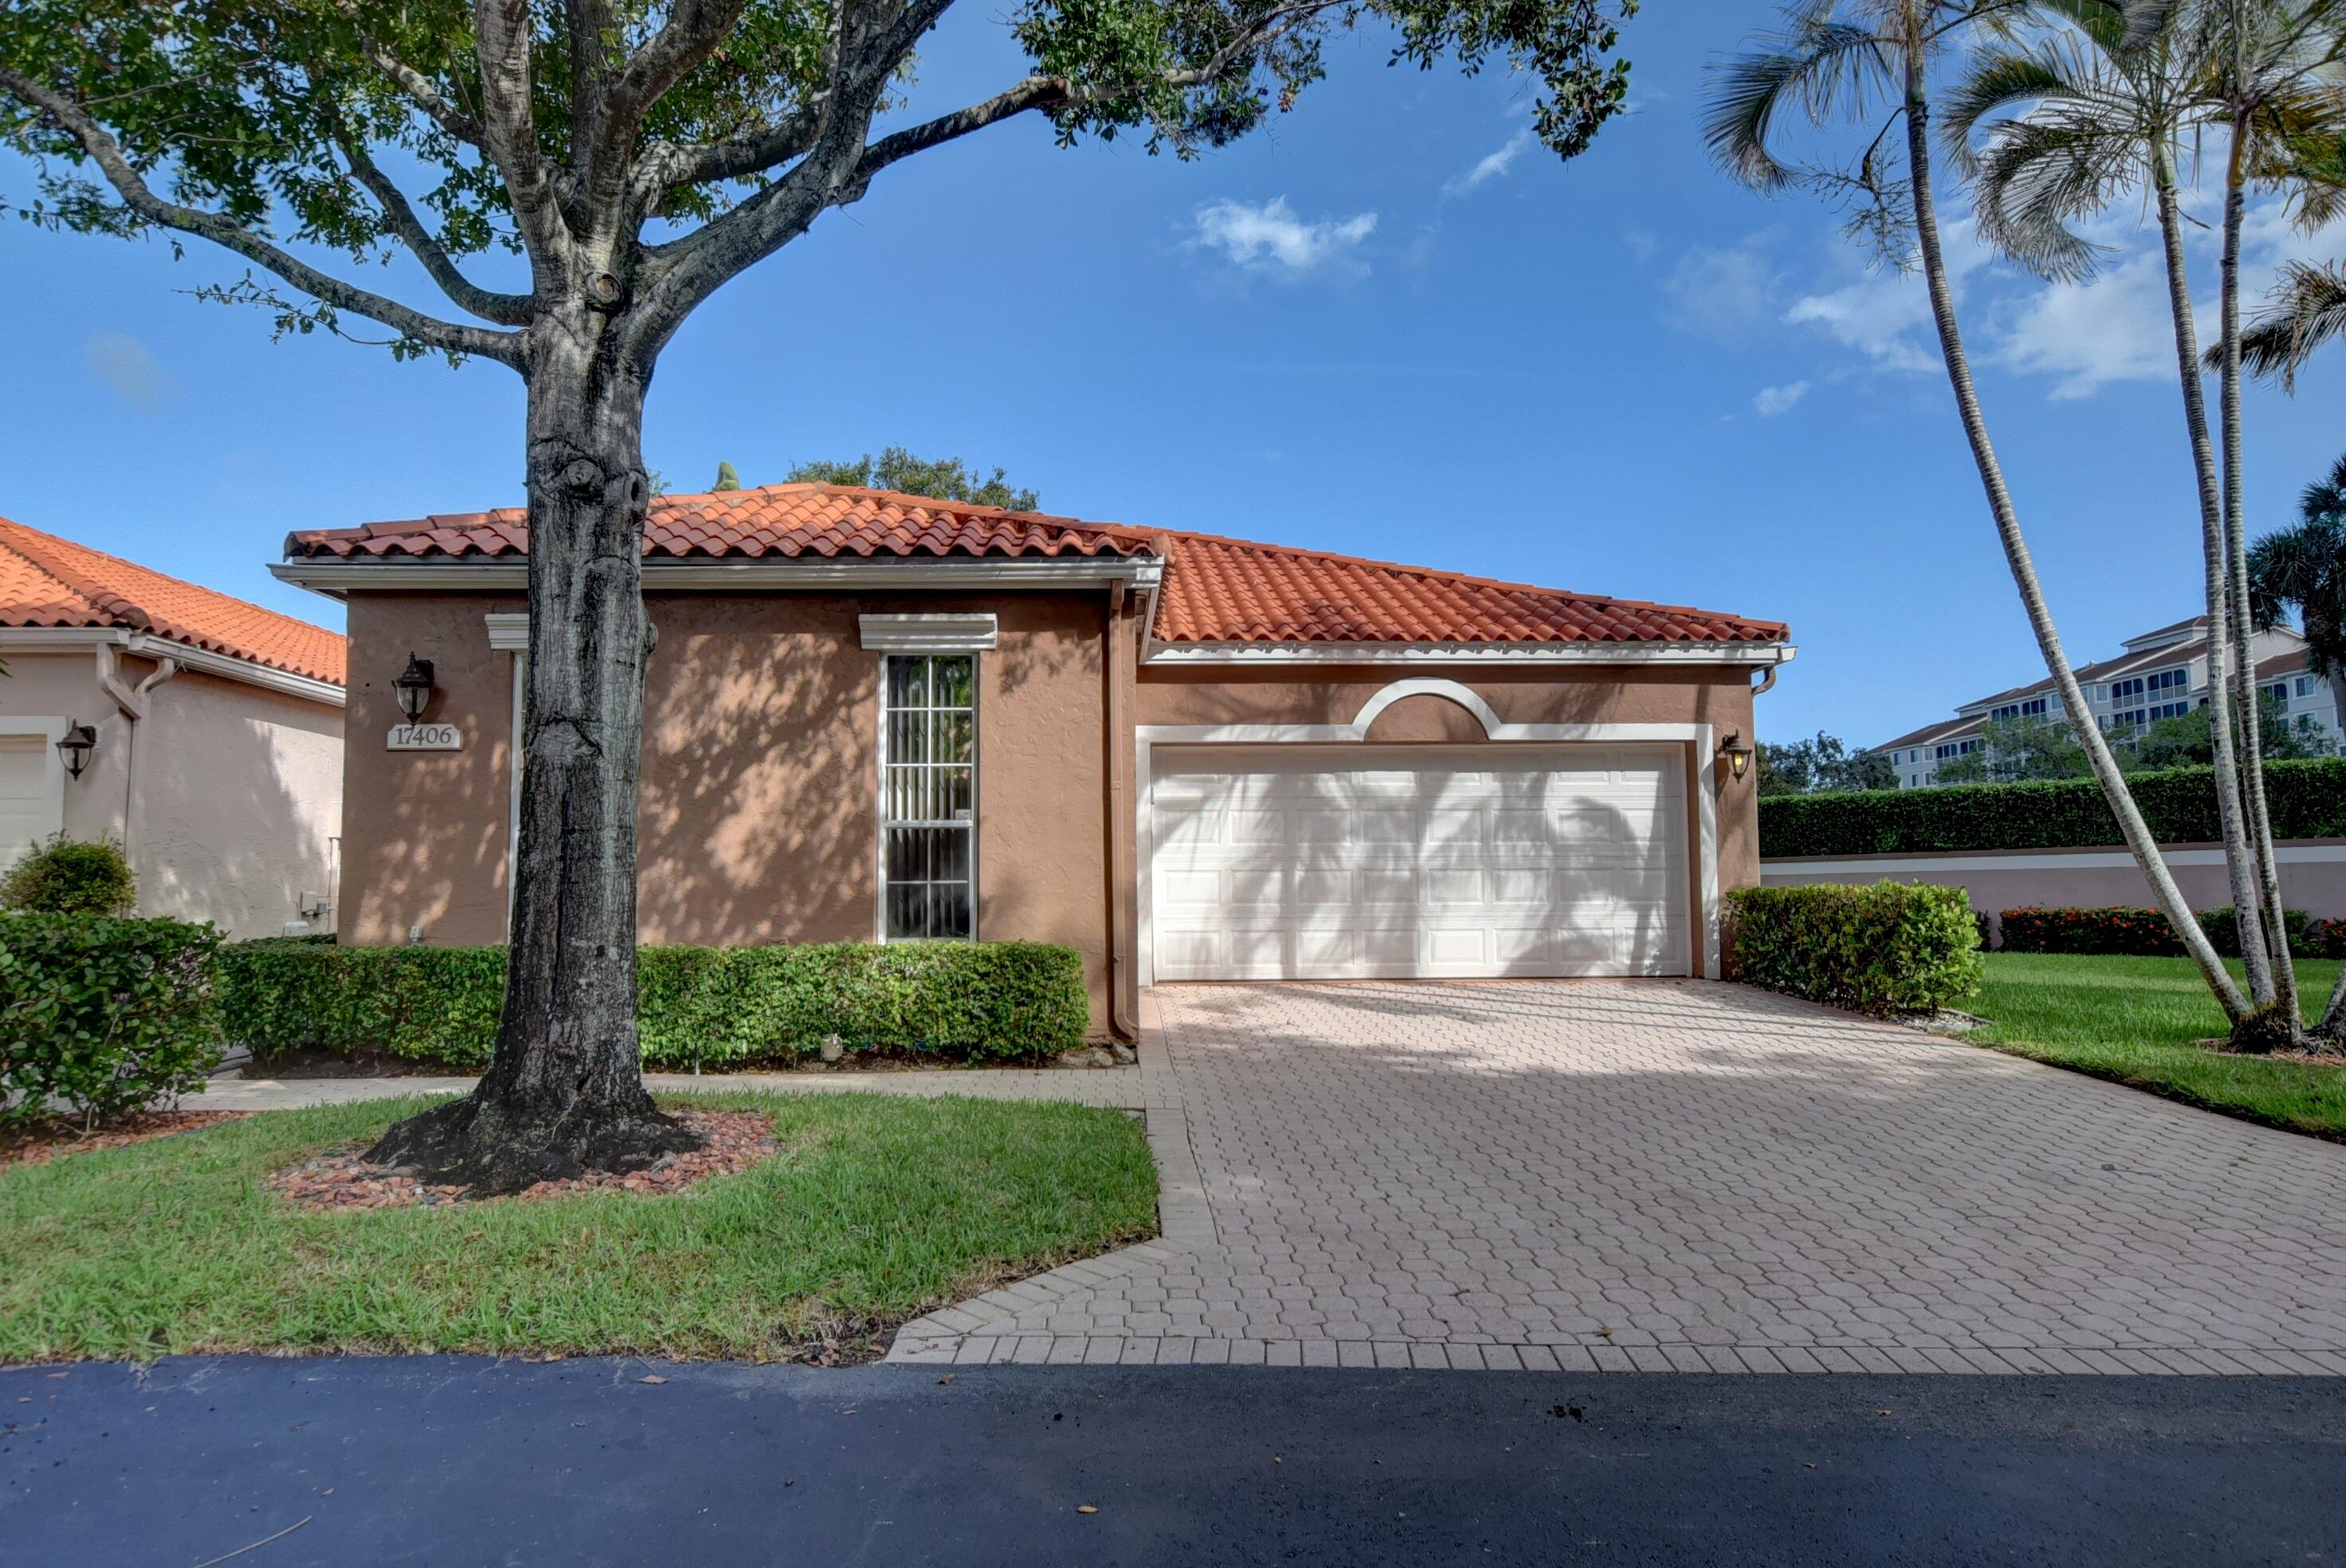 Home for sale in Boca Golf & Tennis Antigua Point Boca Raton Florida